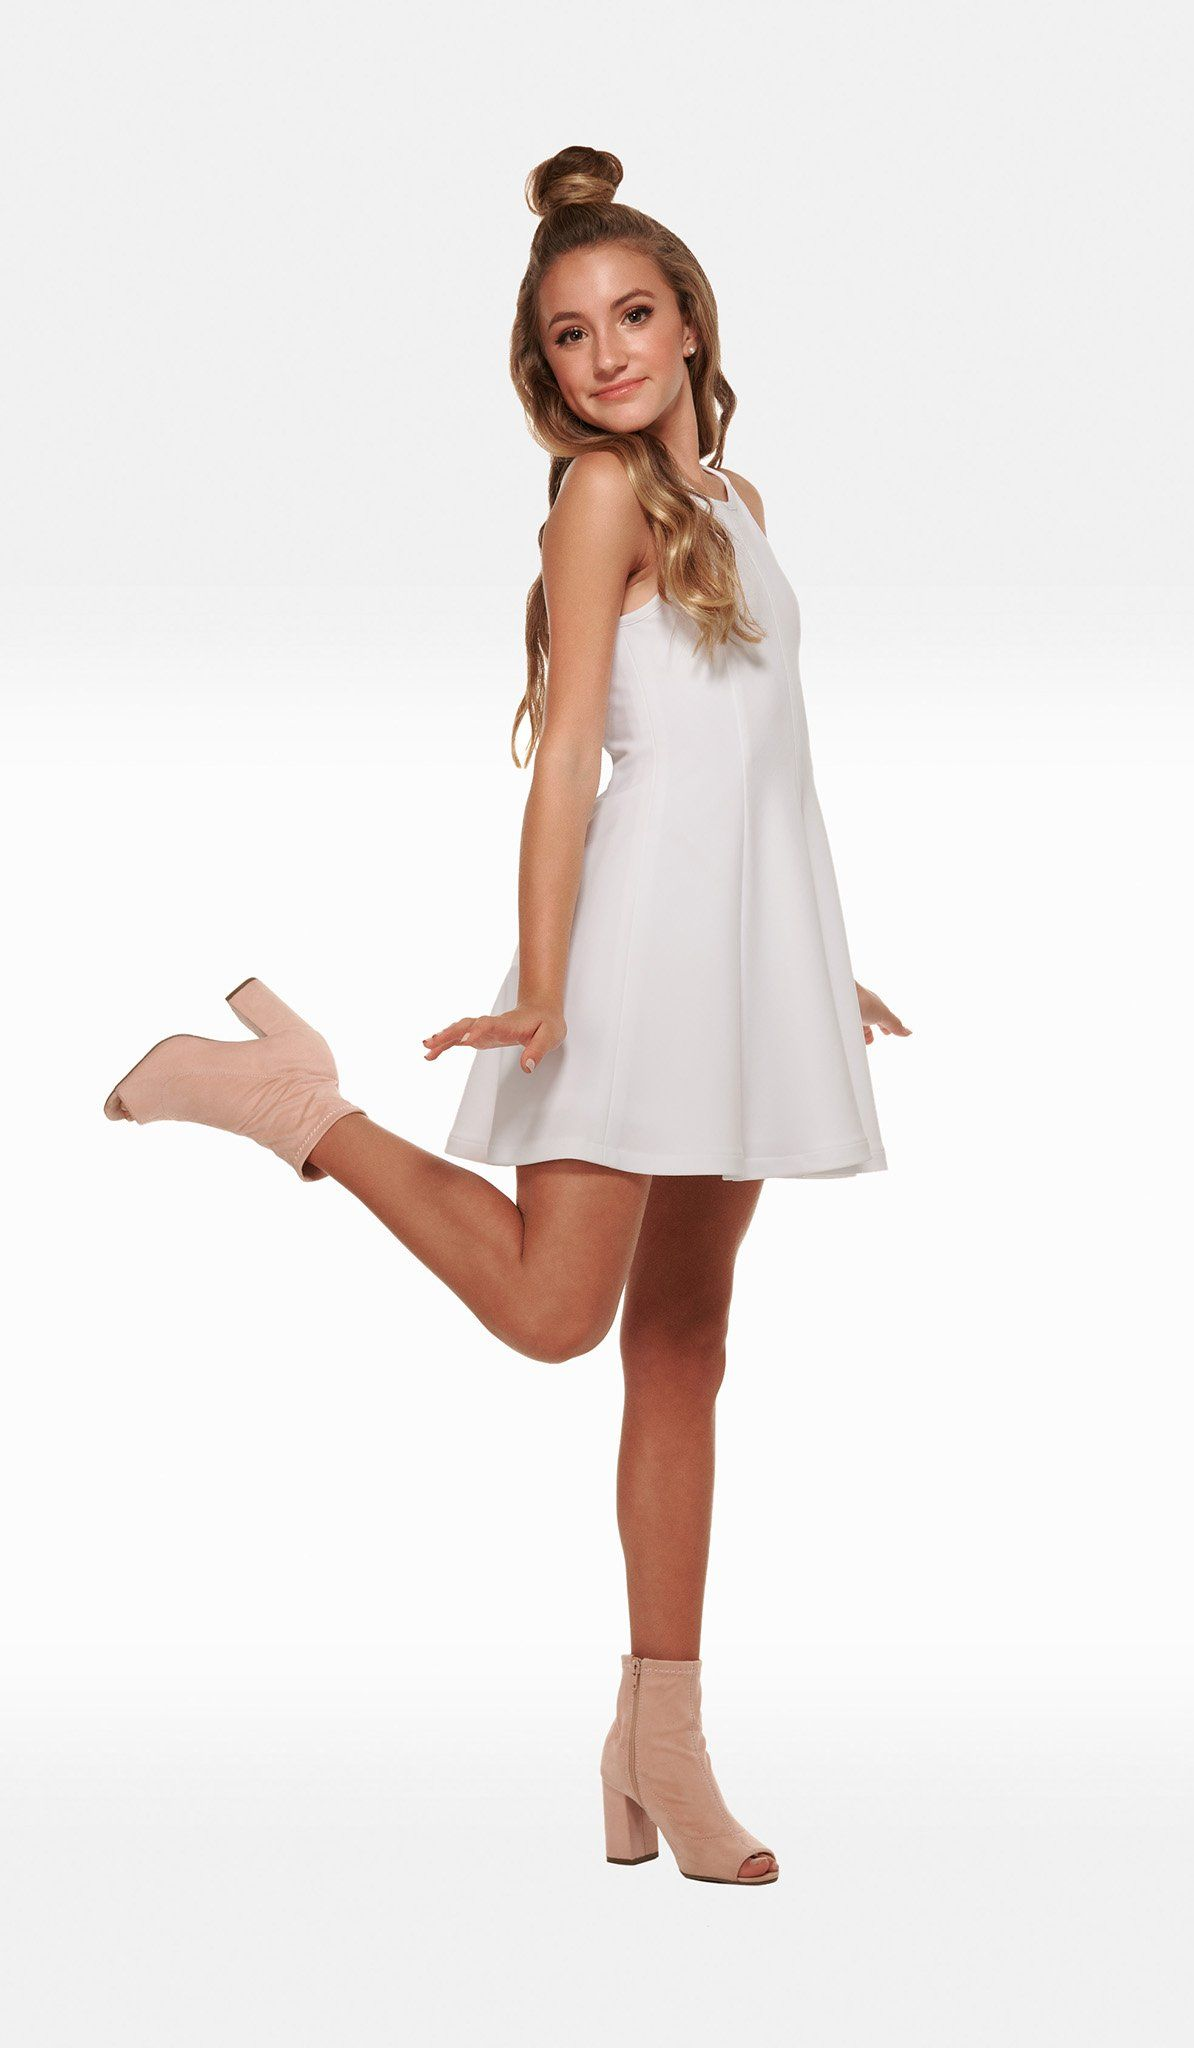 The Sally Miller Serena Dress - White textured stretch knit fit